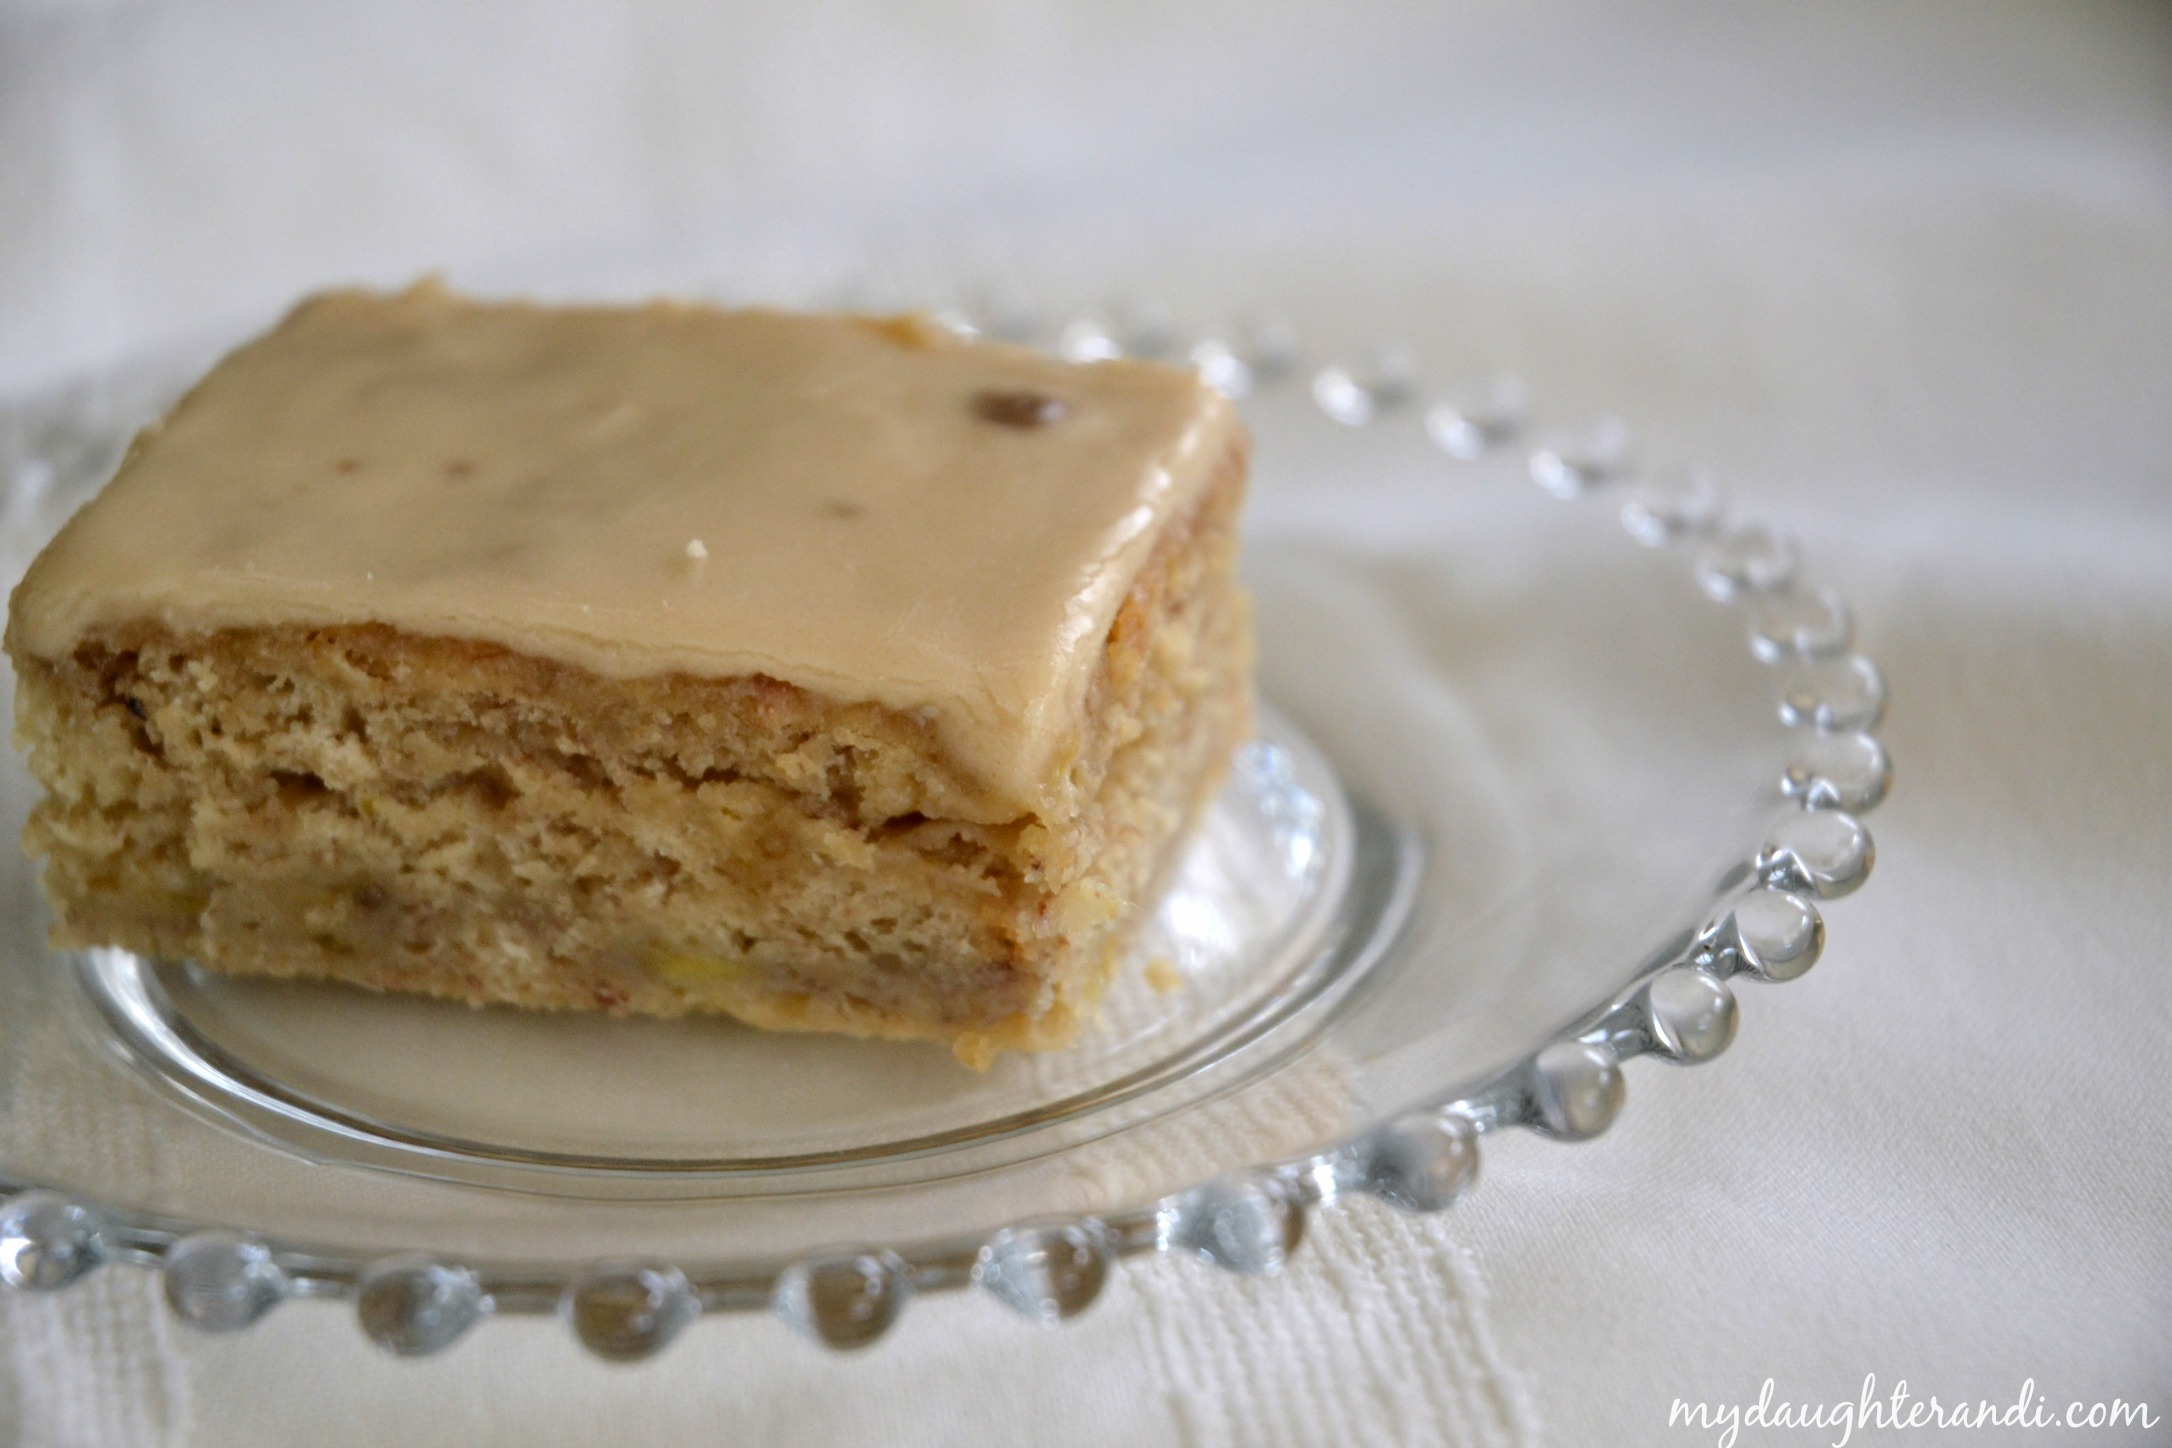 Cake Recipes With Icing Sugar: Browned Butter Banana Cake With Brown Sugar Frosting